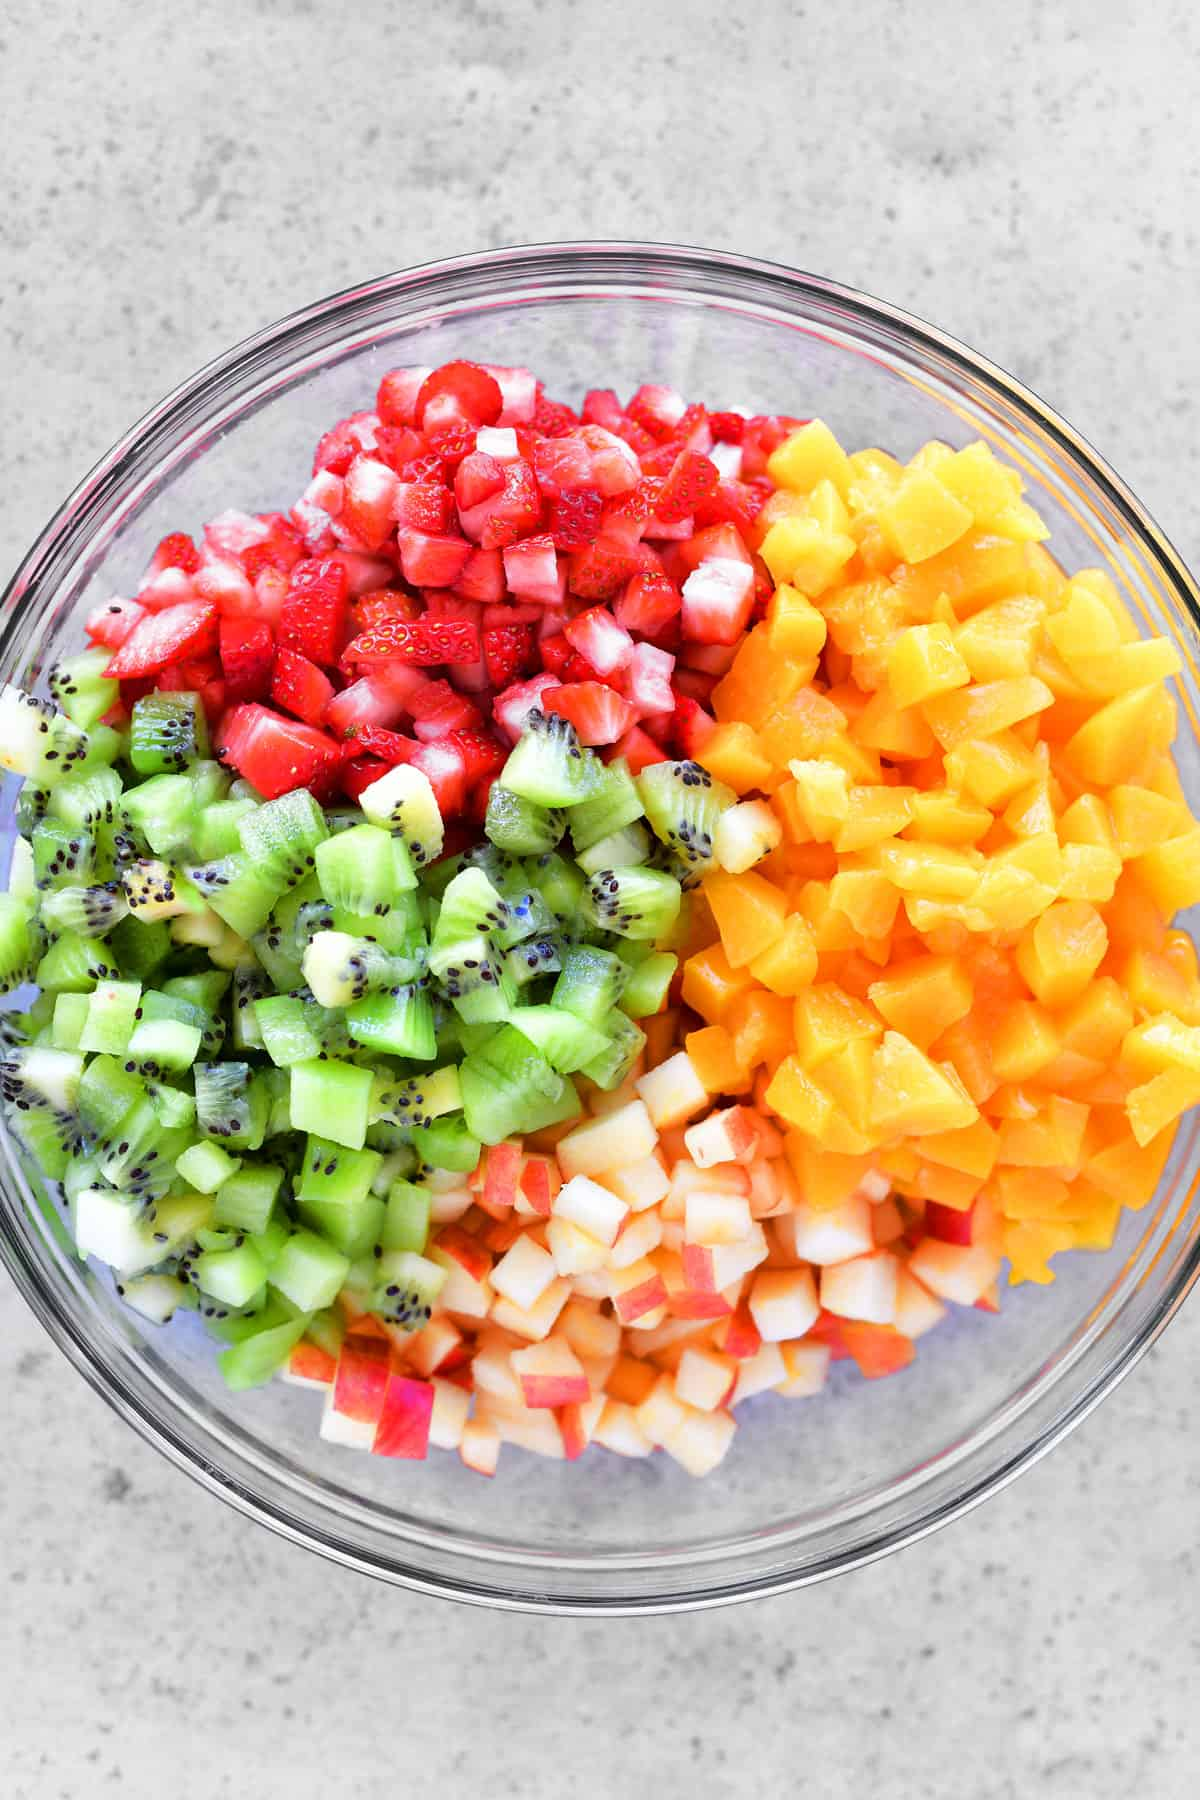 diced apples, peaches, strawberries, and kiwi in a glass bowl